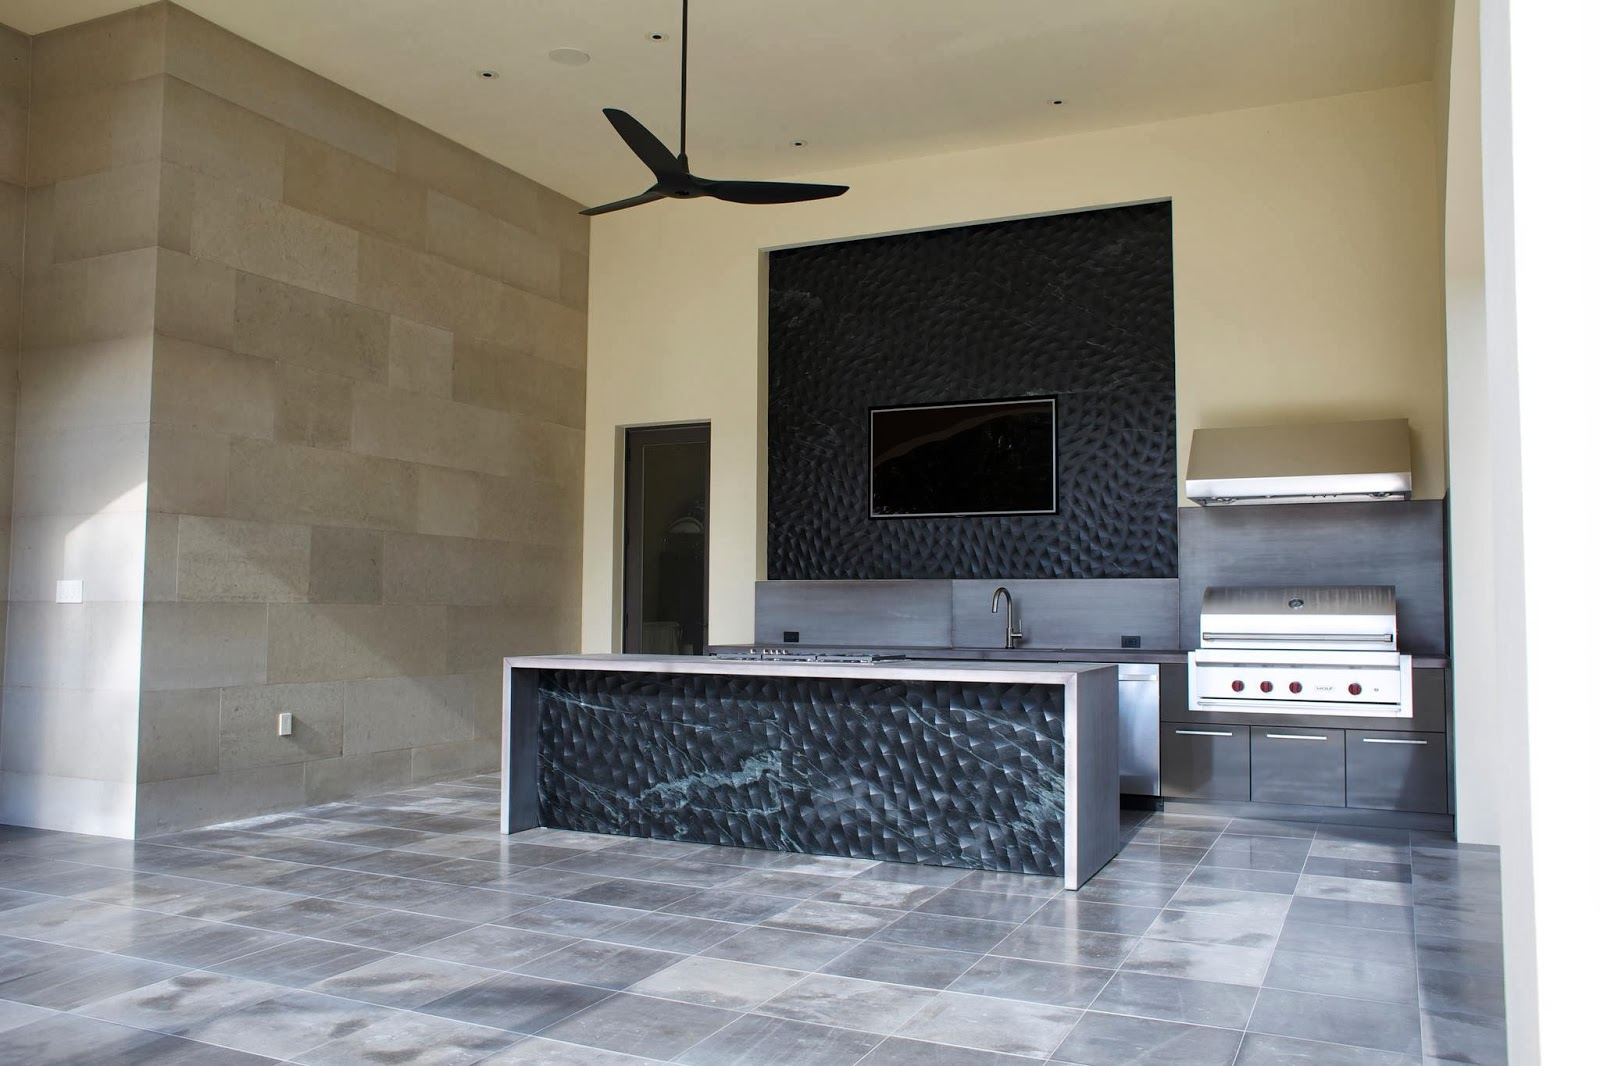 These Black 3d Panels Are Made Out Of Noire Soapstone. Escobedo  Construction Cut The Custom Pattern Into The Panels On Their 5 Axis CNC  Machine And It ...